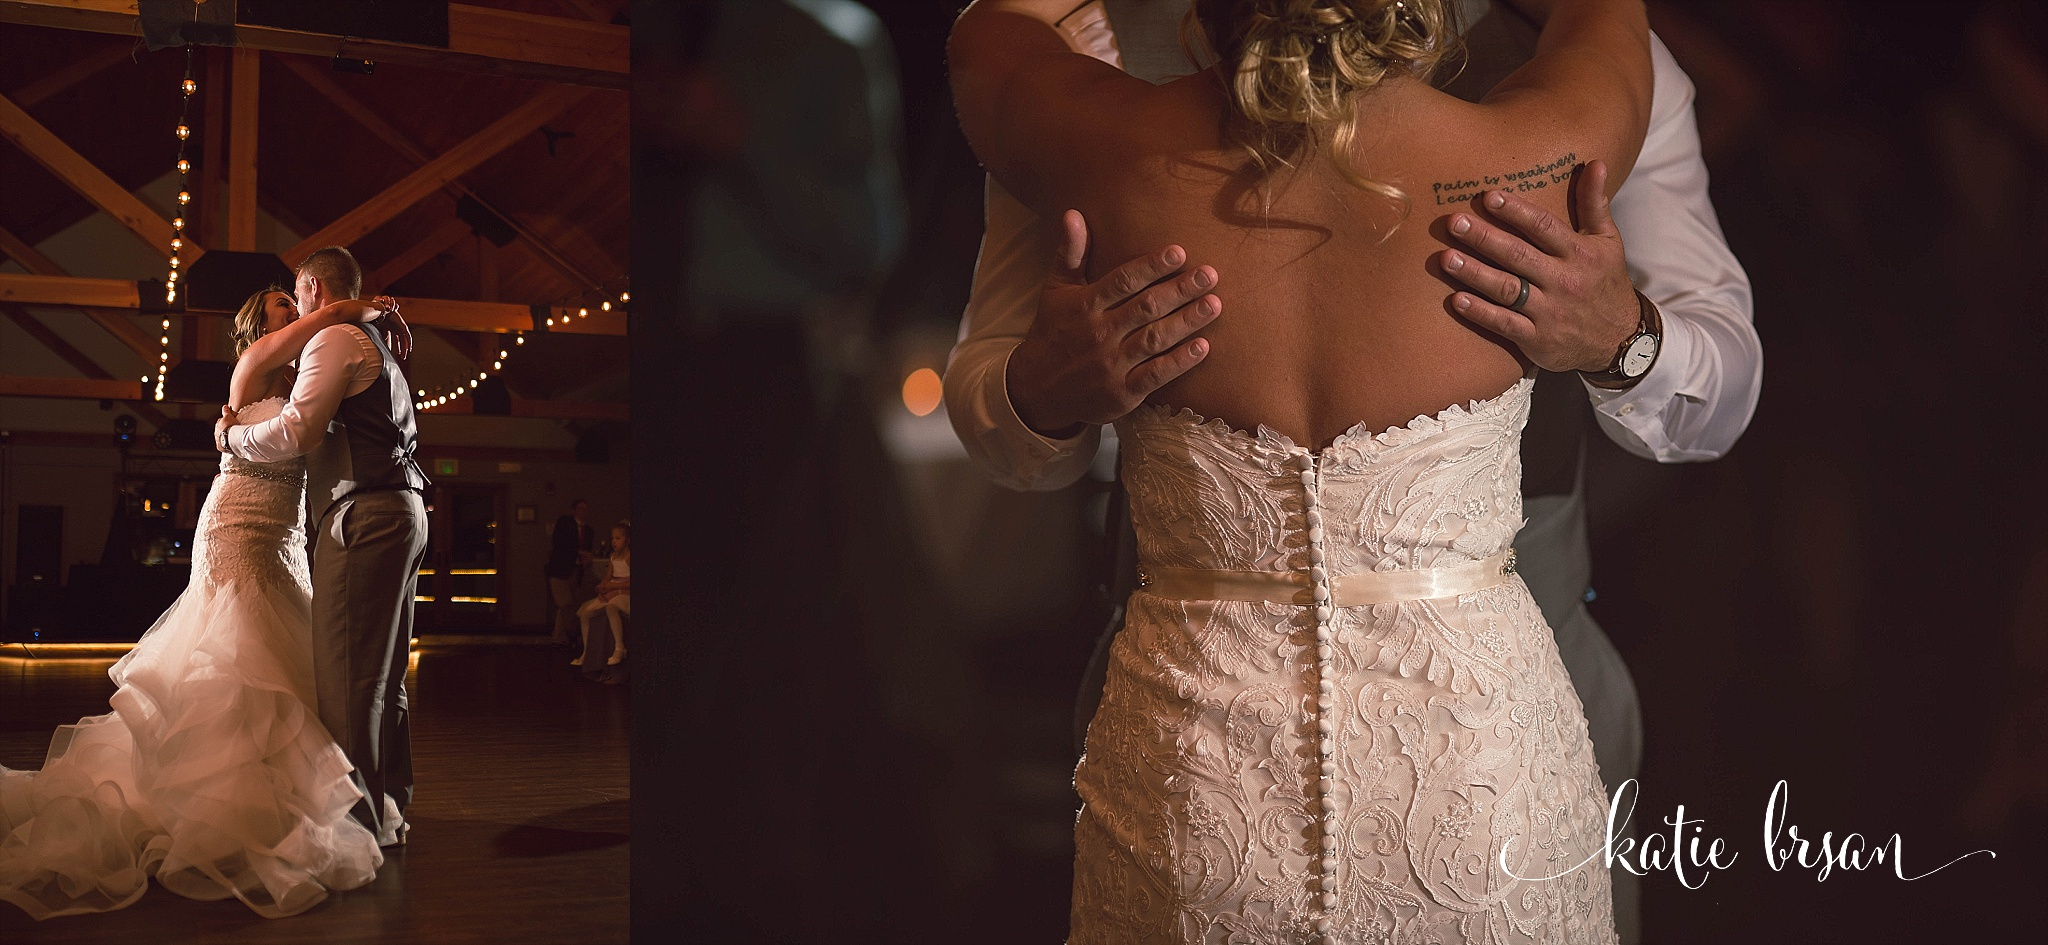 Fishermen'sInn_Wedding_Elburn_Chicago_Wedding_Photographer_1155.jpg